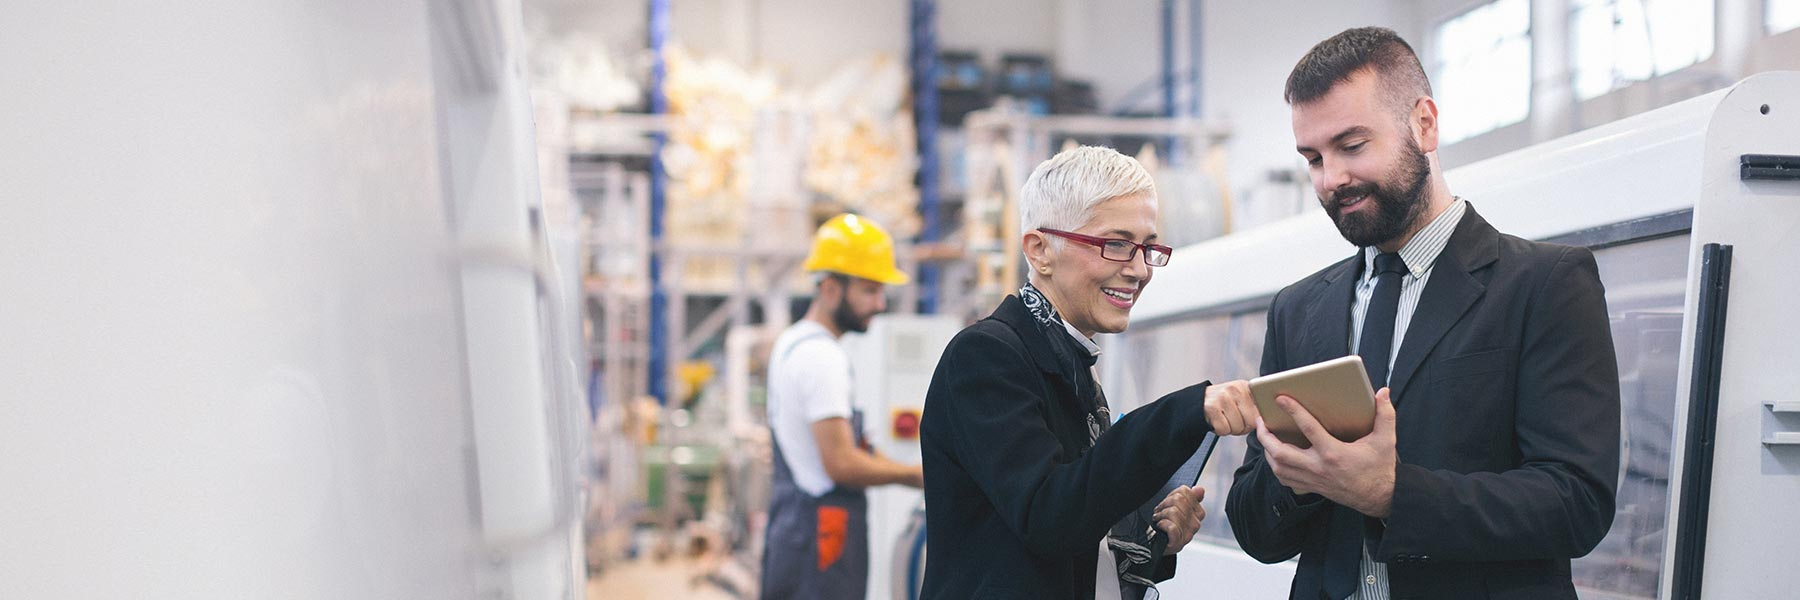 A business woman with white hair and red glasses smiles and points to a tablet held by a business man with a beard, as they stand in a factory surrounded my technology machinery.